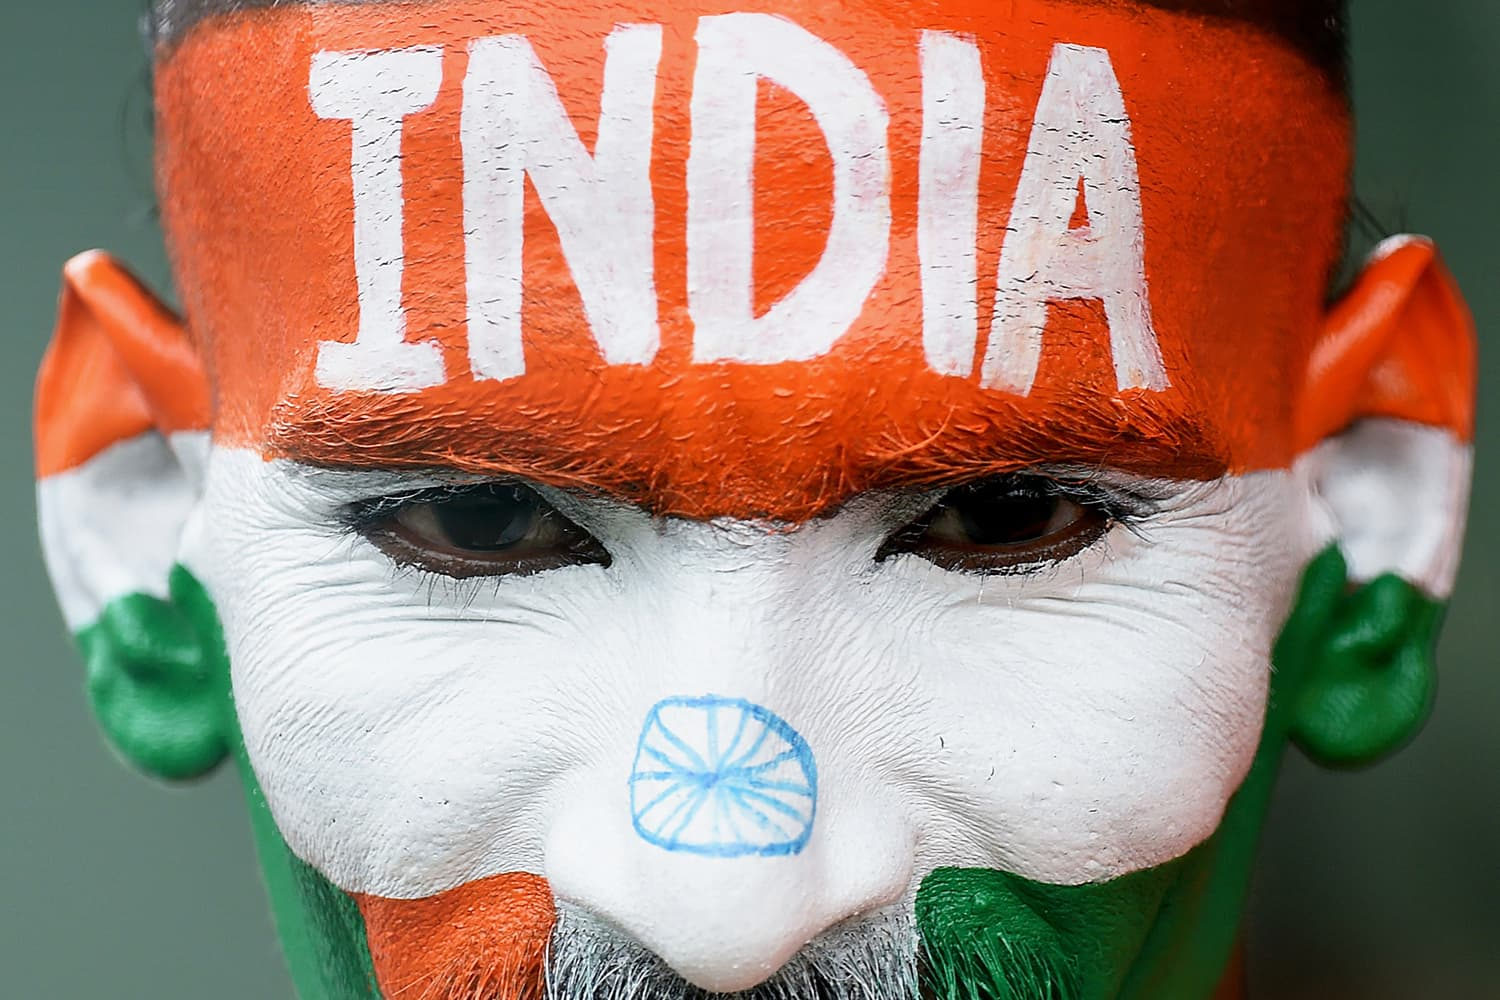 In this file photo taken on September 1, 2015, Indian cricket fan Sudhir Kumar attends the fifth and final day of the third and final Test match between Sri Lanka and India at the Sinhalese Sports Club in Colombo. — AFP